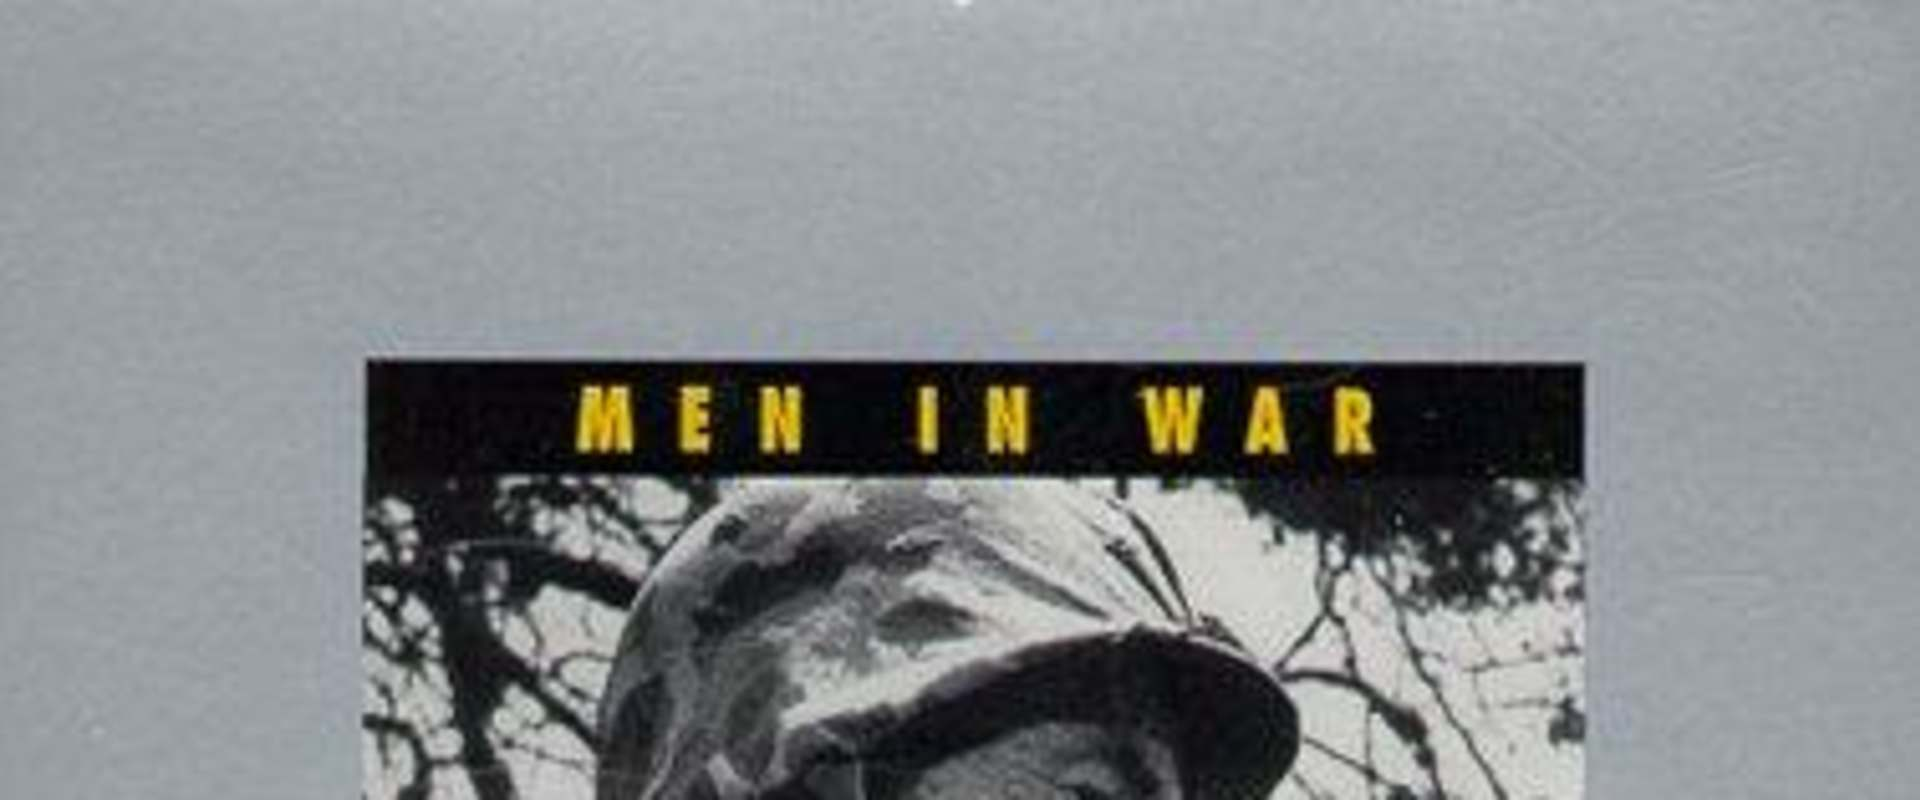 Men in War background 2